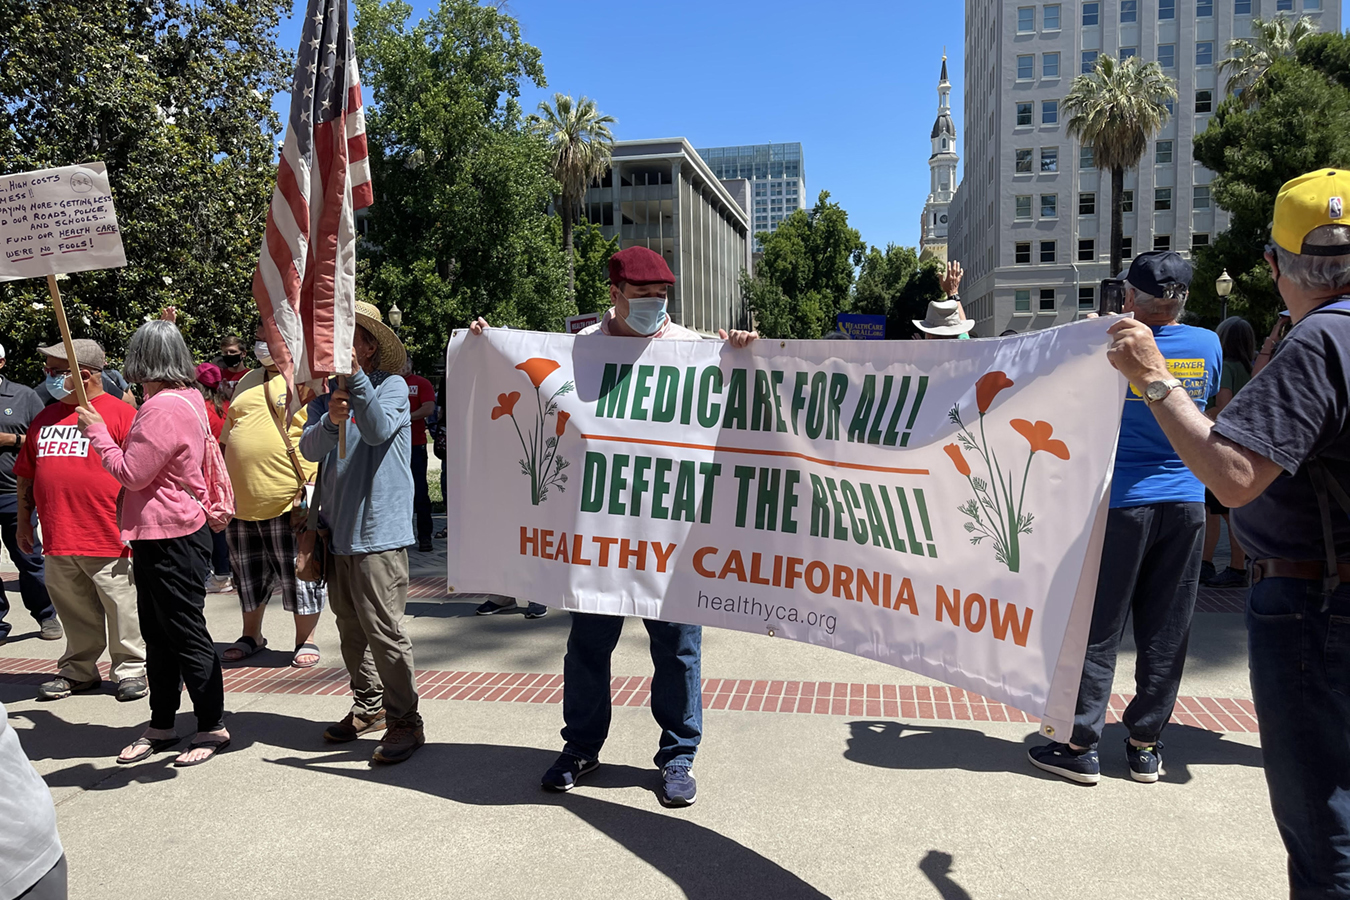 """Protesters hold up a sign that reads, """"Medicare for All! Defeat the Recall! Healthy California Now."""""""